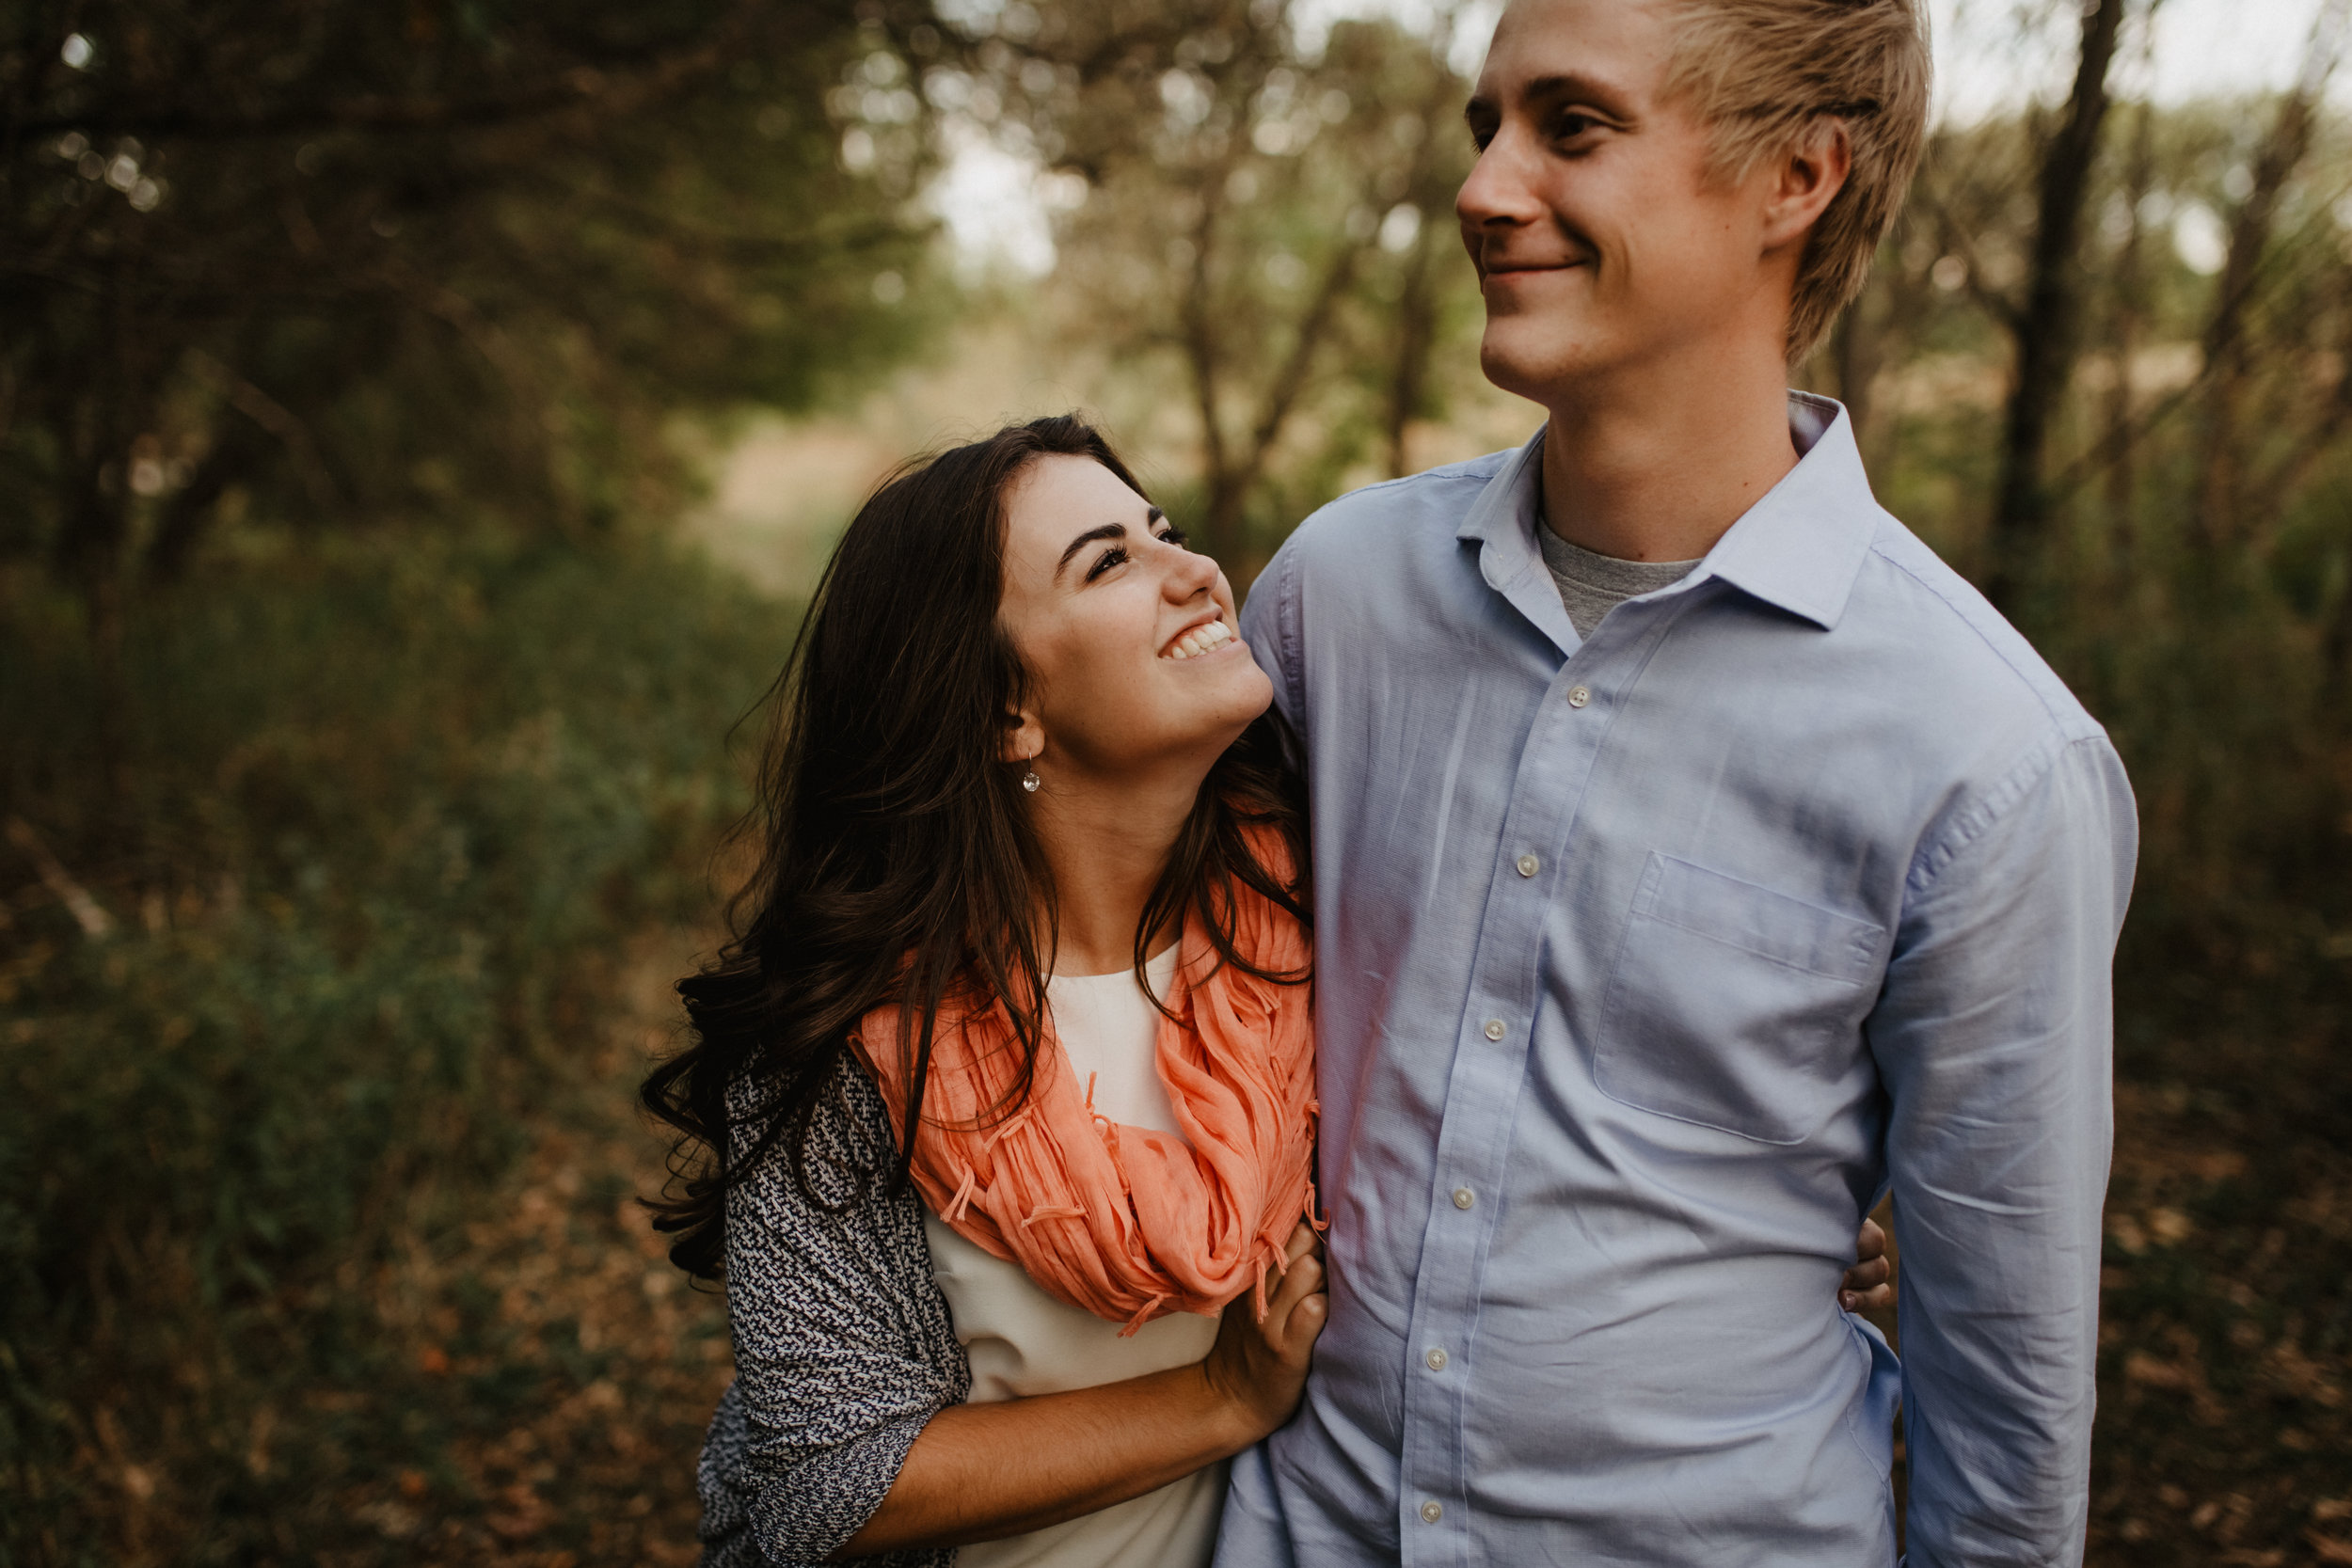 Claire-Rex-Pickar-Engagement-Photography-Collection-356.jpg